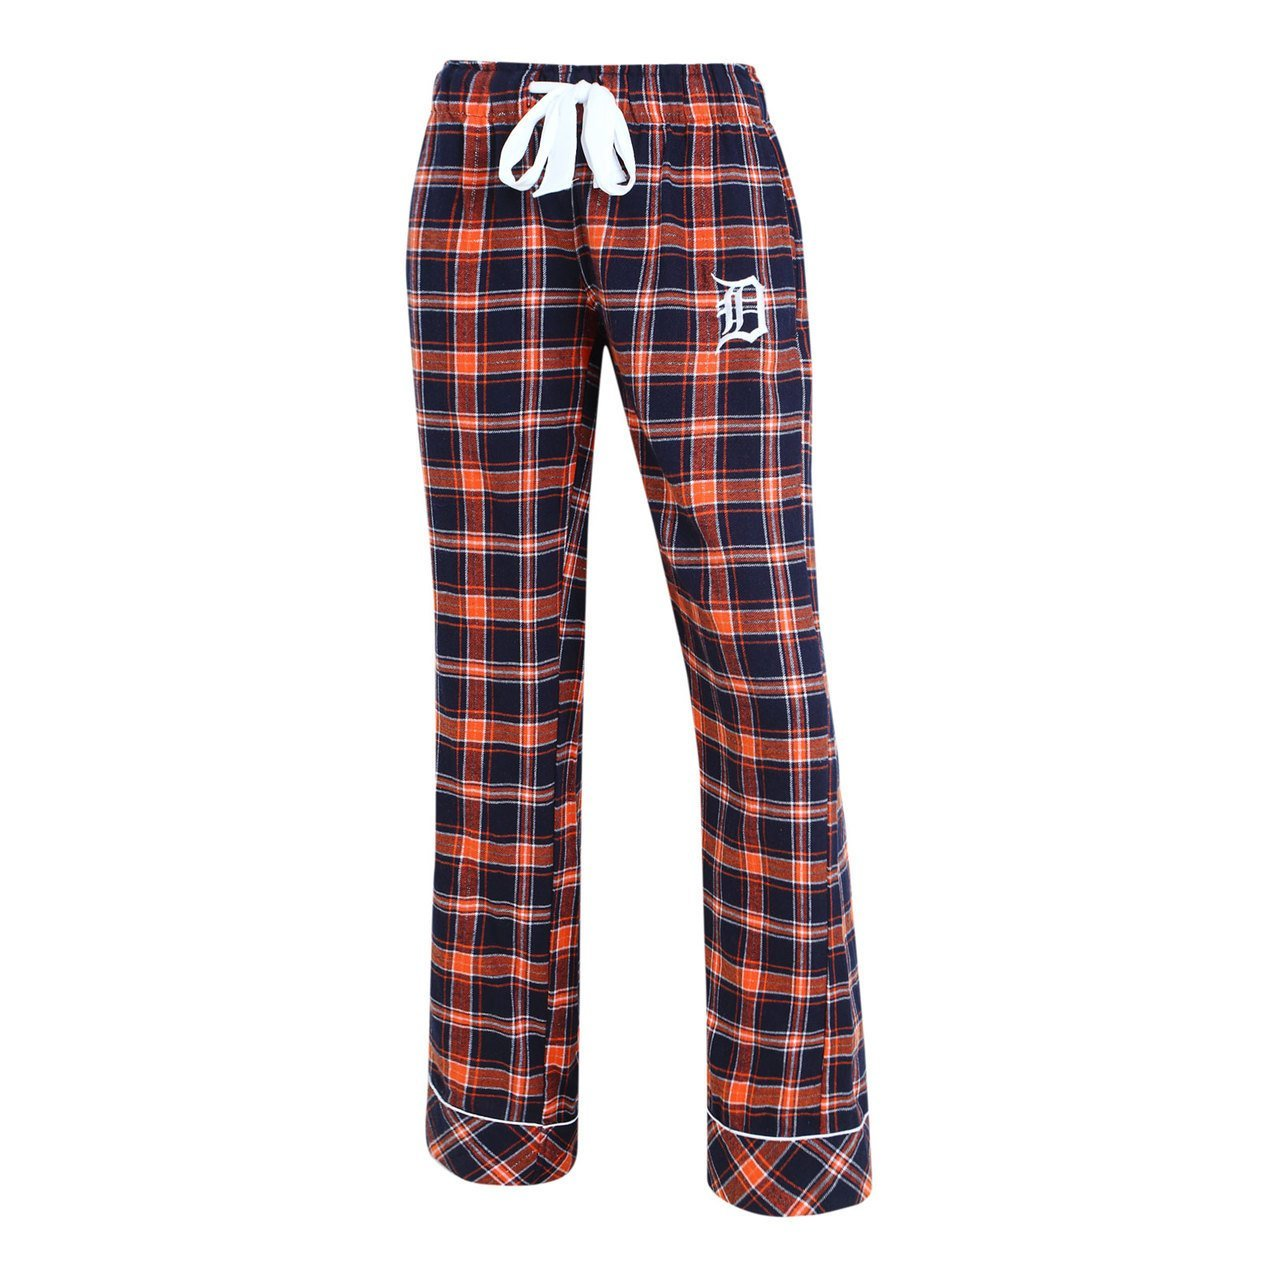 MLB Detroit Tigers Women's Flannel Pajama Pants